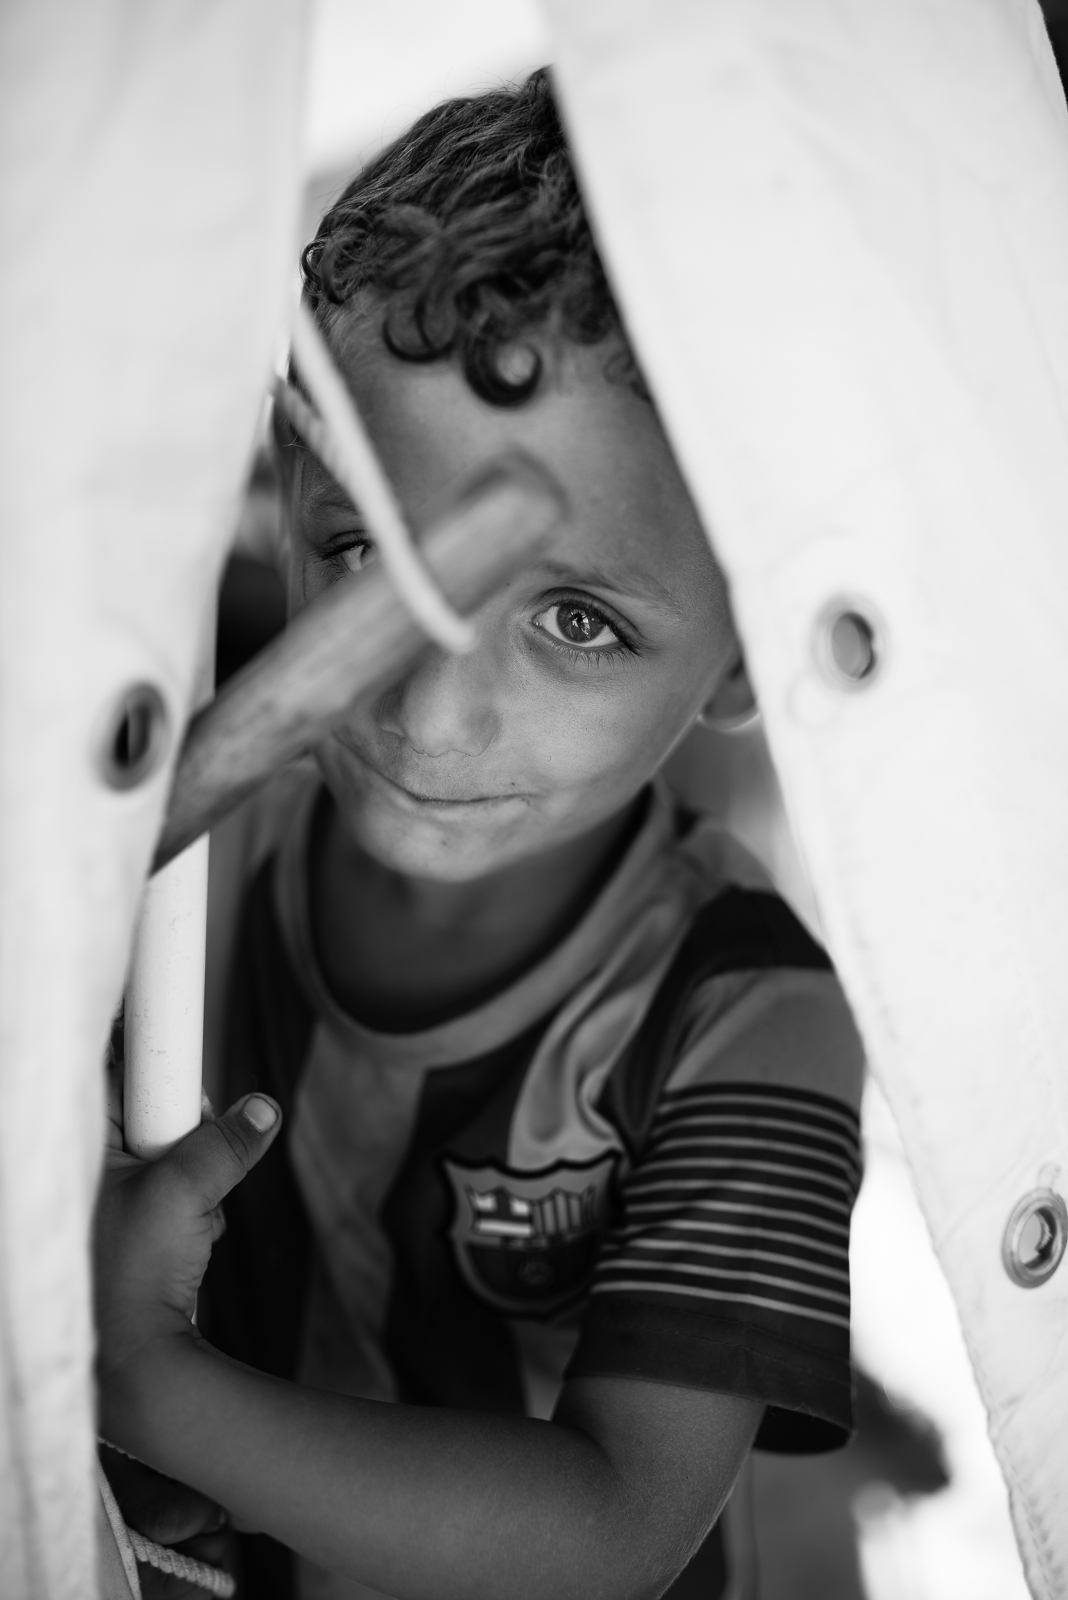 Timidity. Christians refugees camp in Erbil